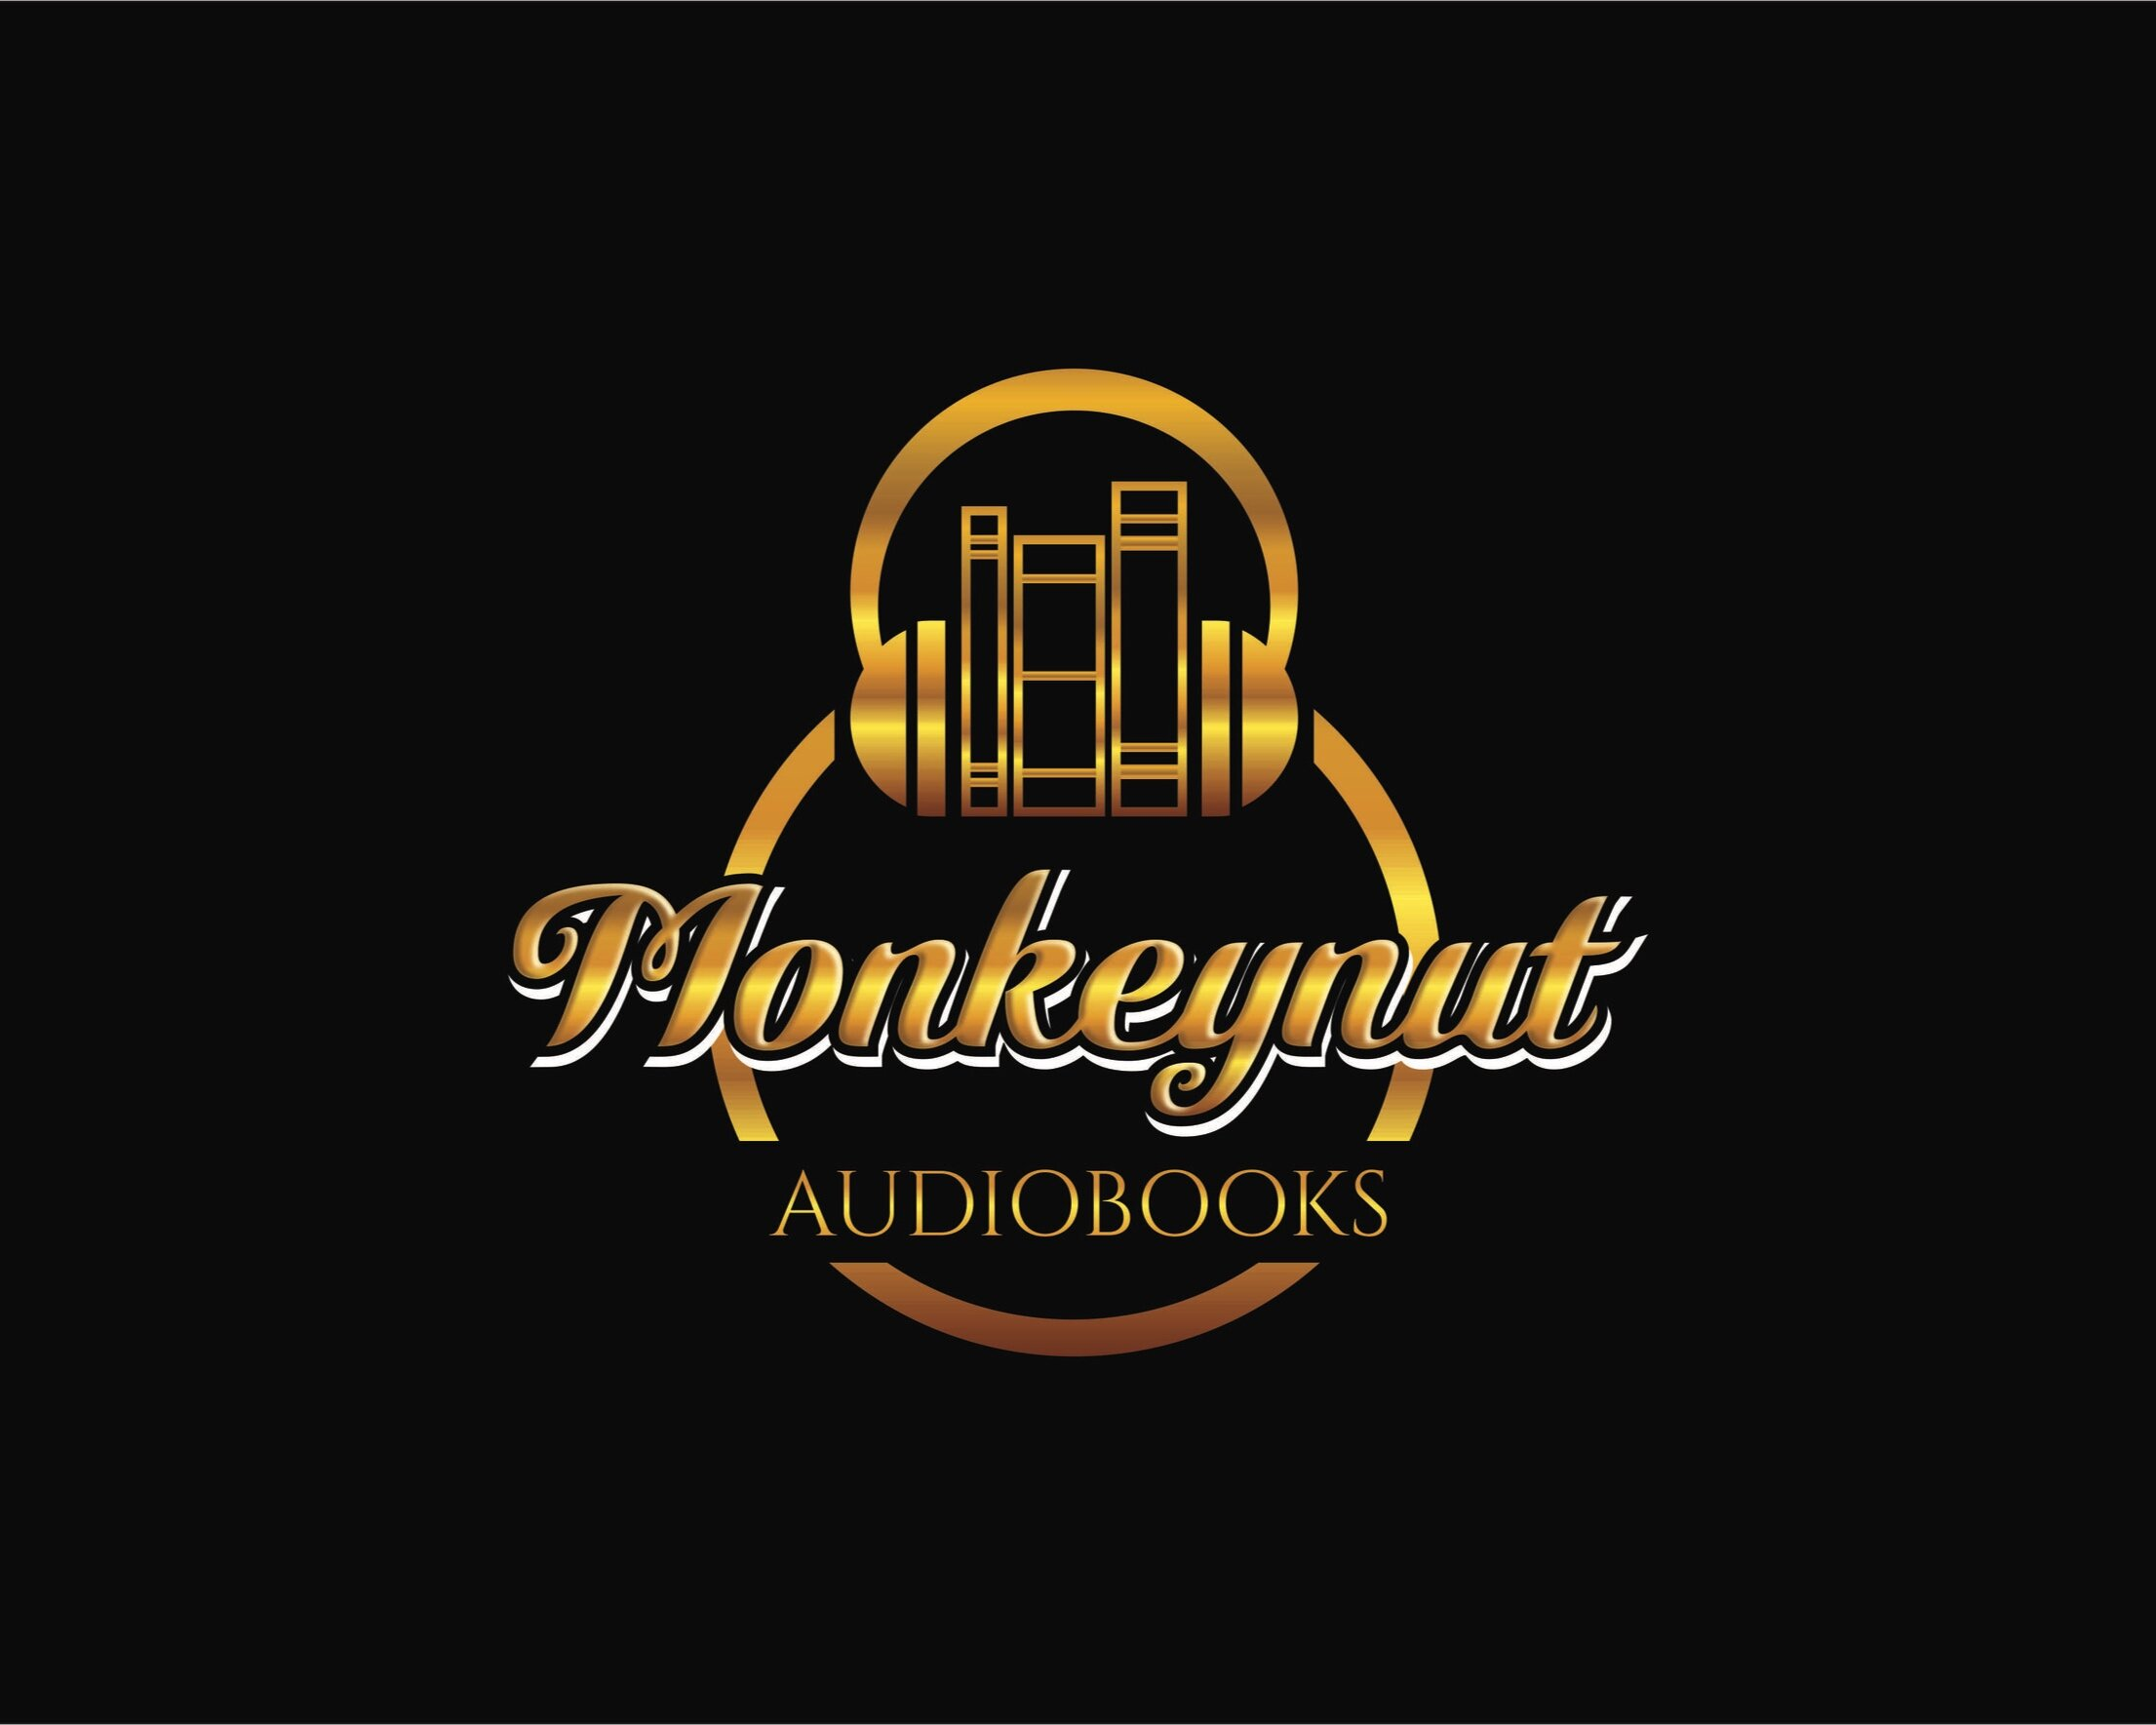 Create your next audiobook with Monkeynut Audiobooks. Working with publishers and scriptwriters, Monkeynut Audiobooks offer everything you need to make an impact in audiobook publishing.jpg